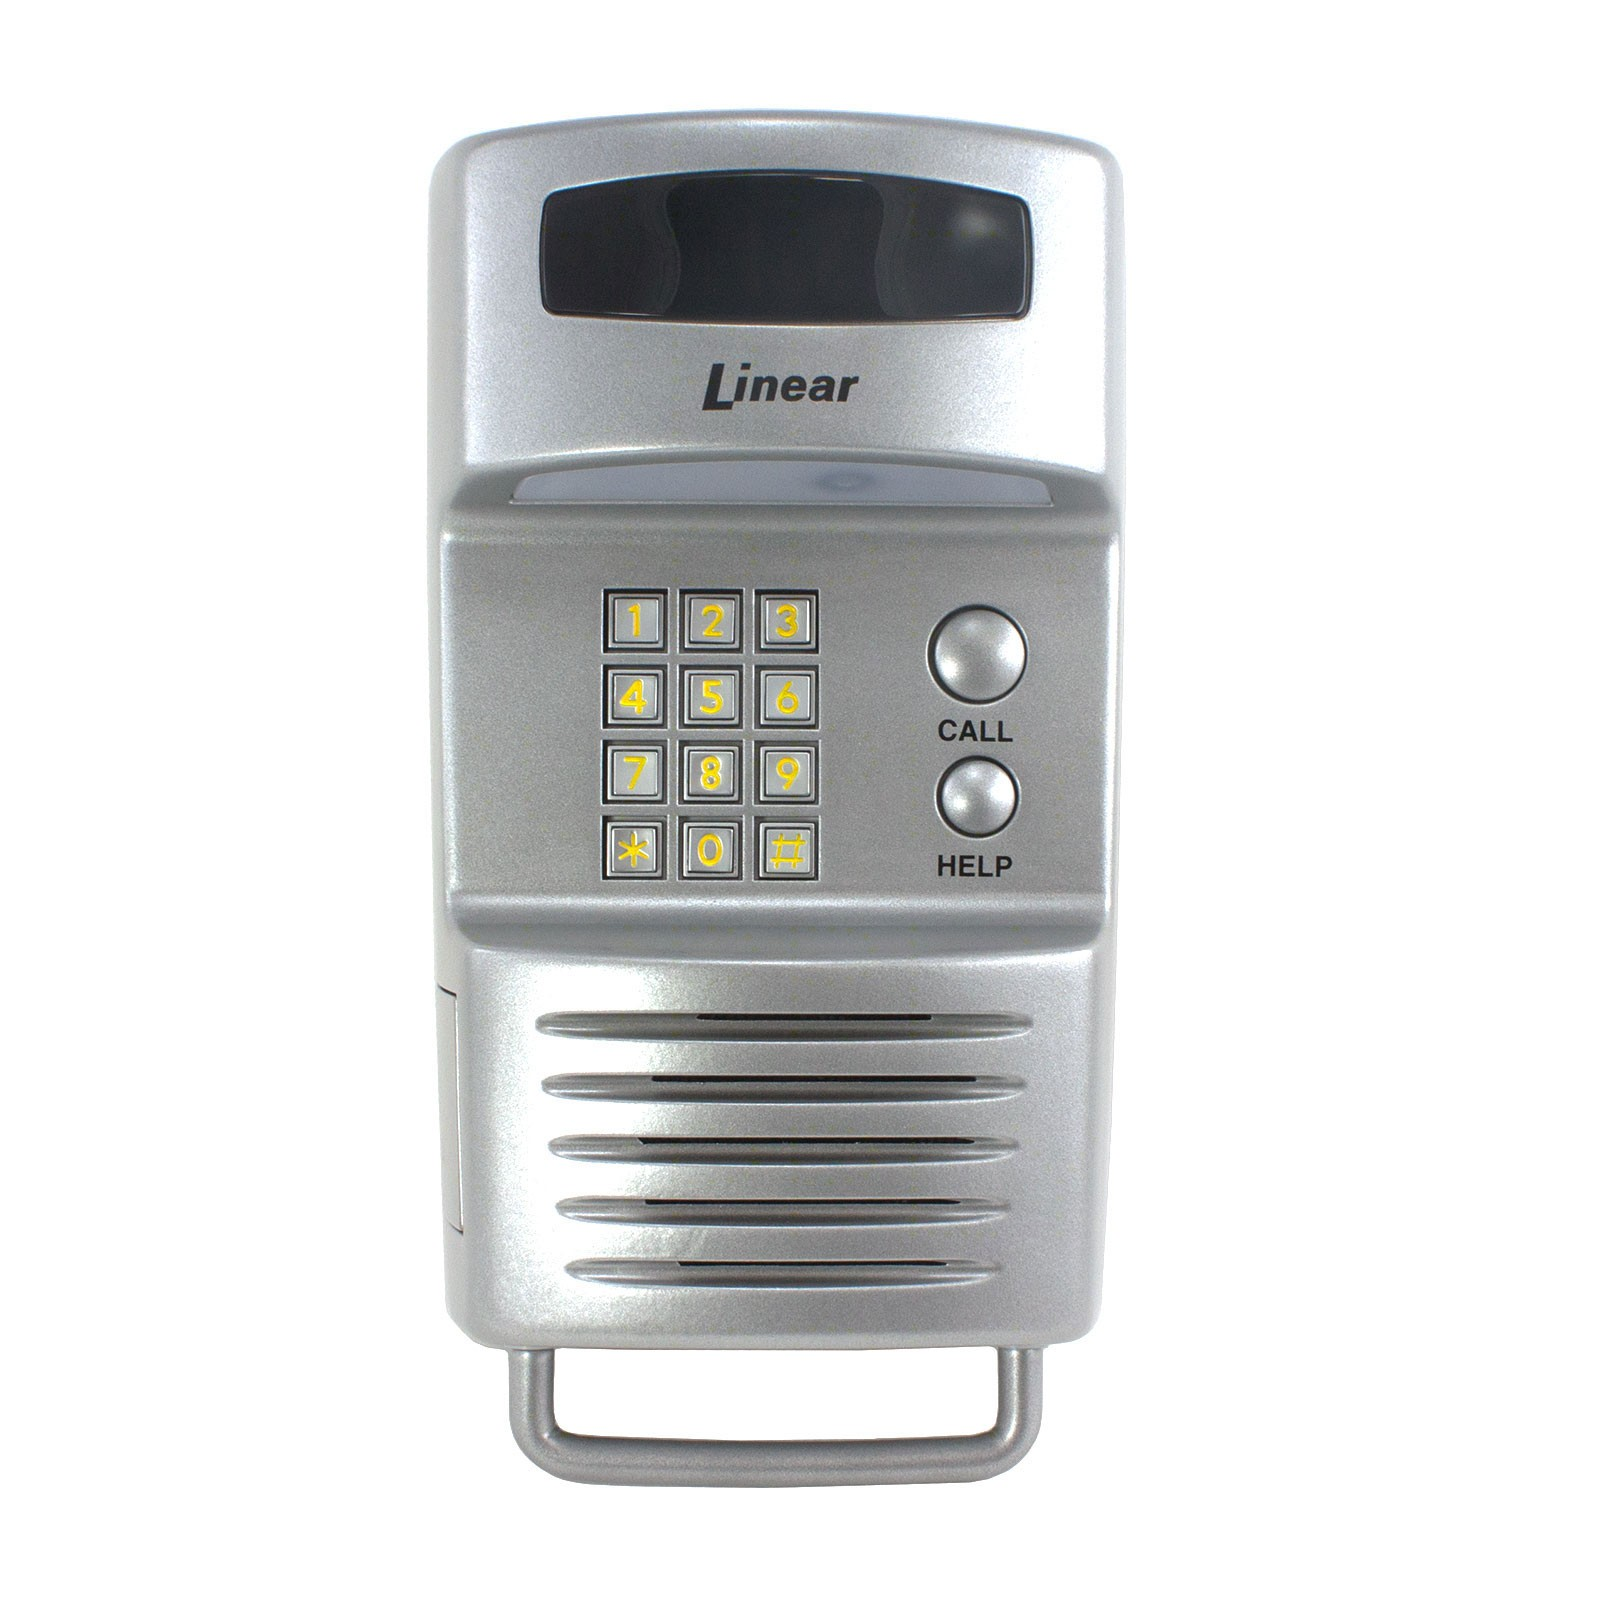 Linear Residential Phone Entry System Re 1ss Stainless Steel